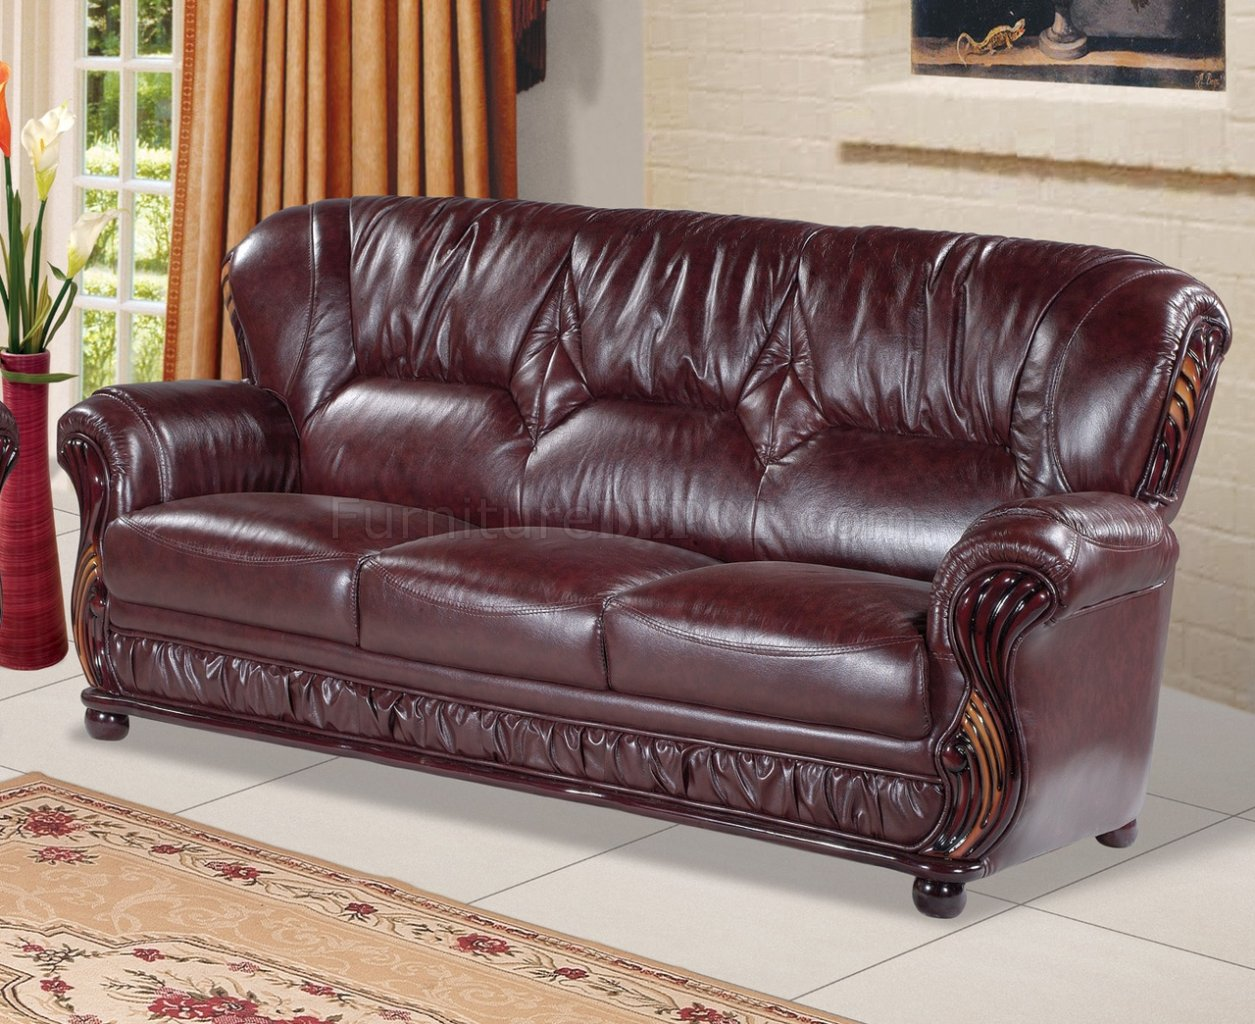 Mina 639 Sofa In Burgundy Bonded Leather W Optional Items